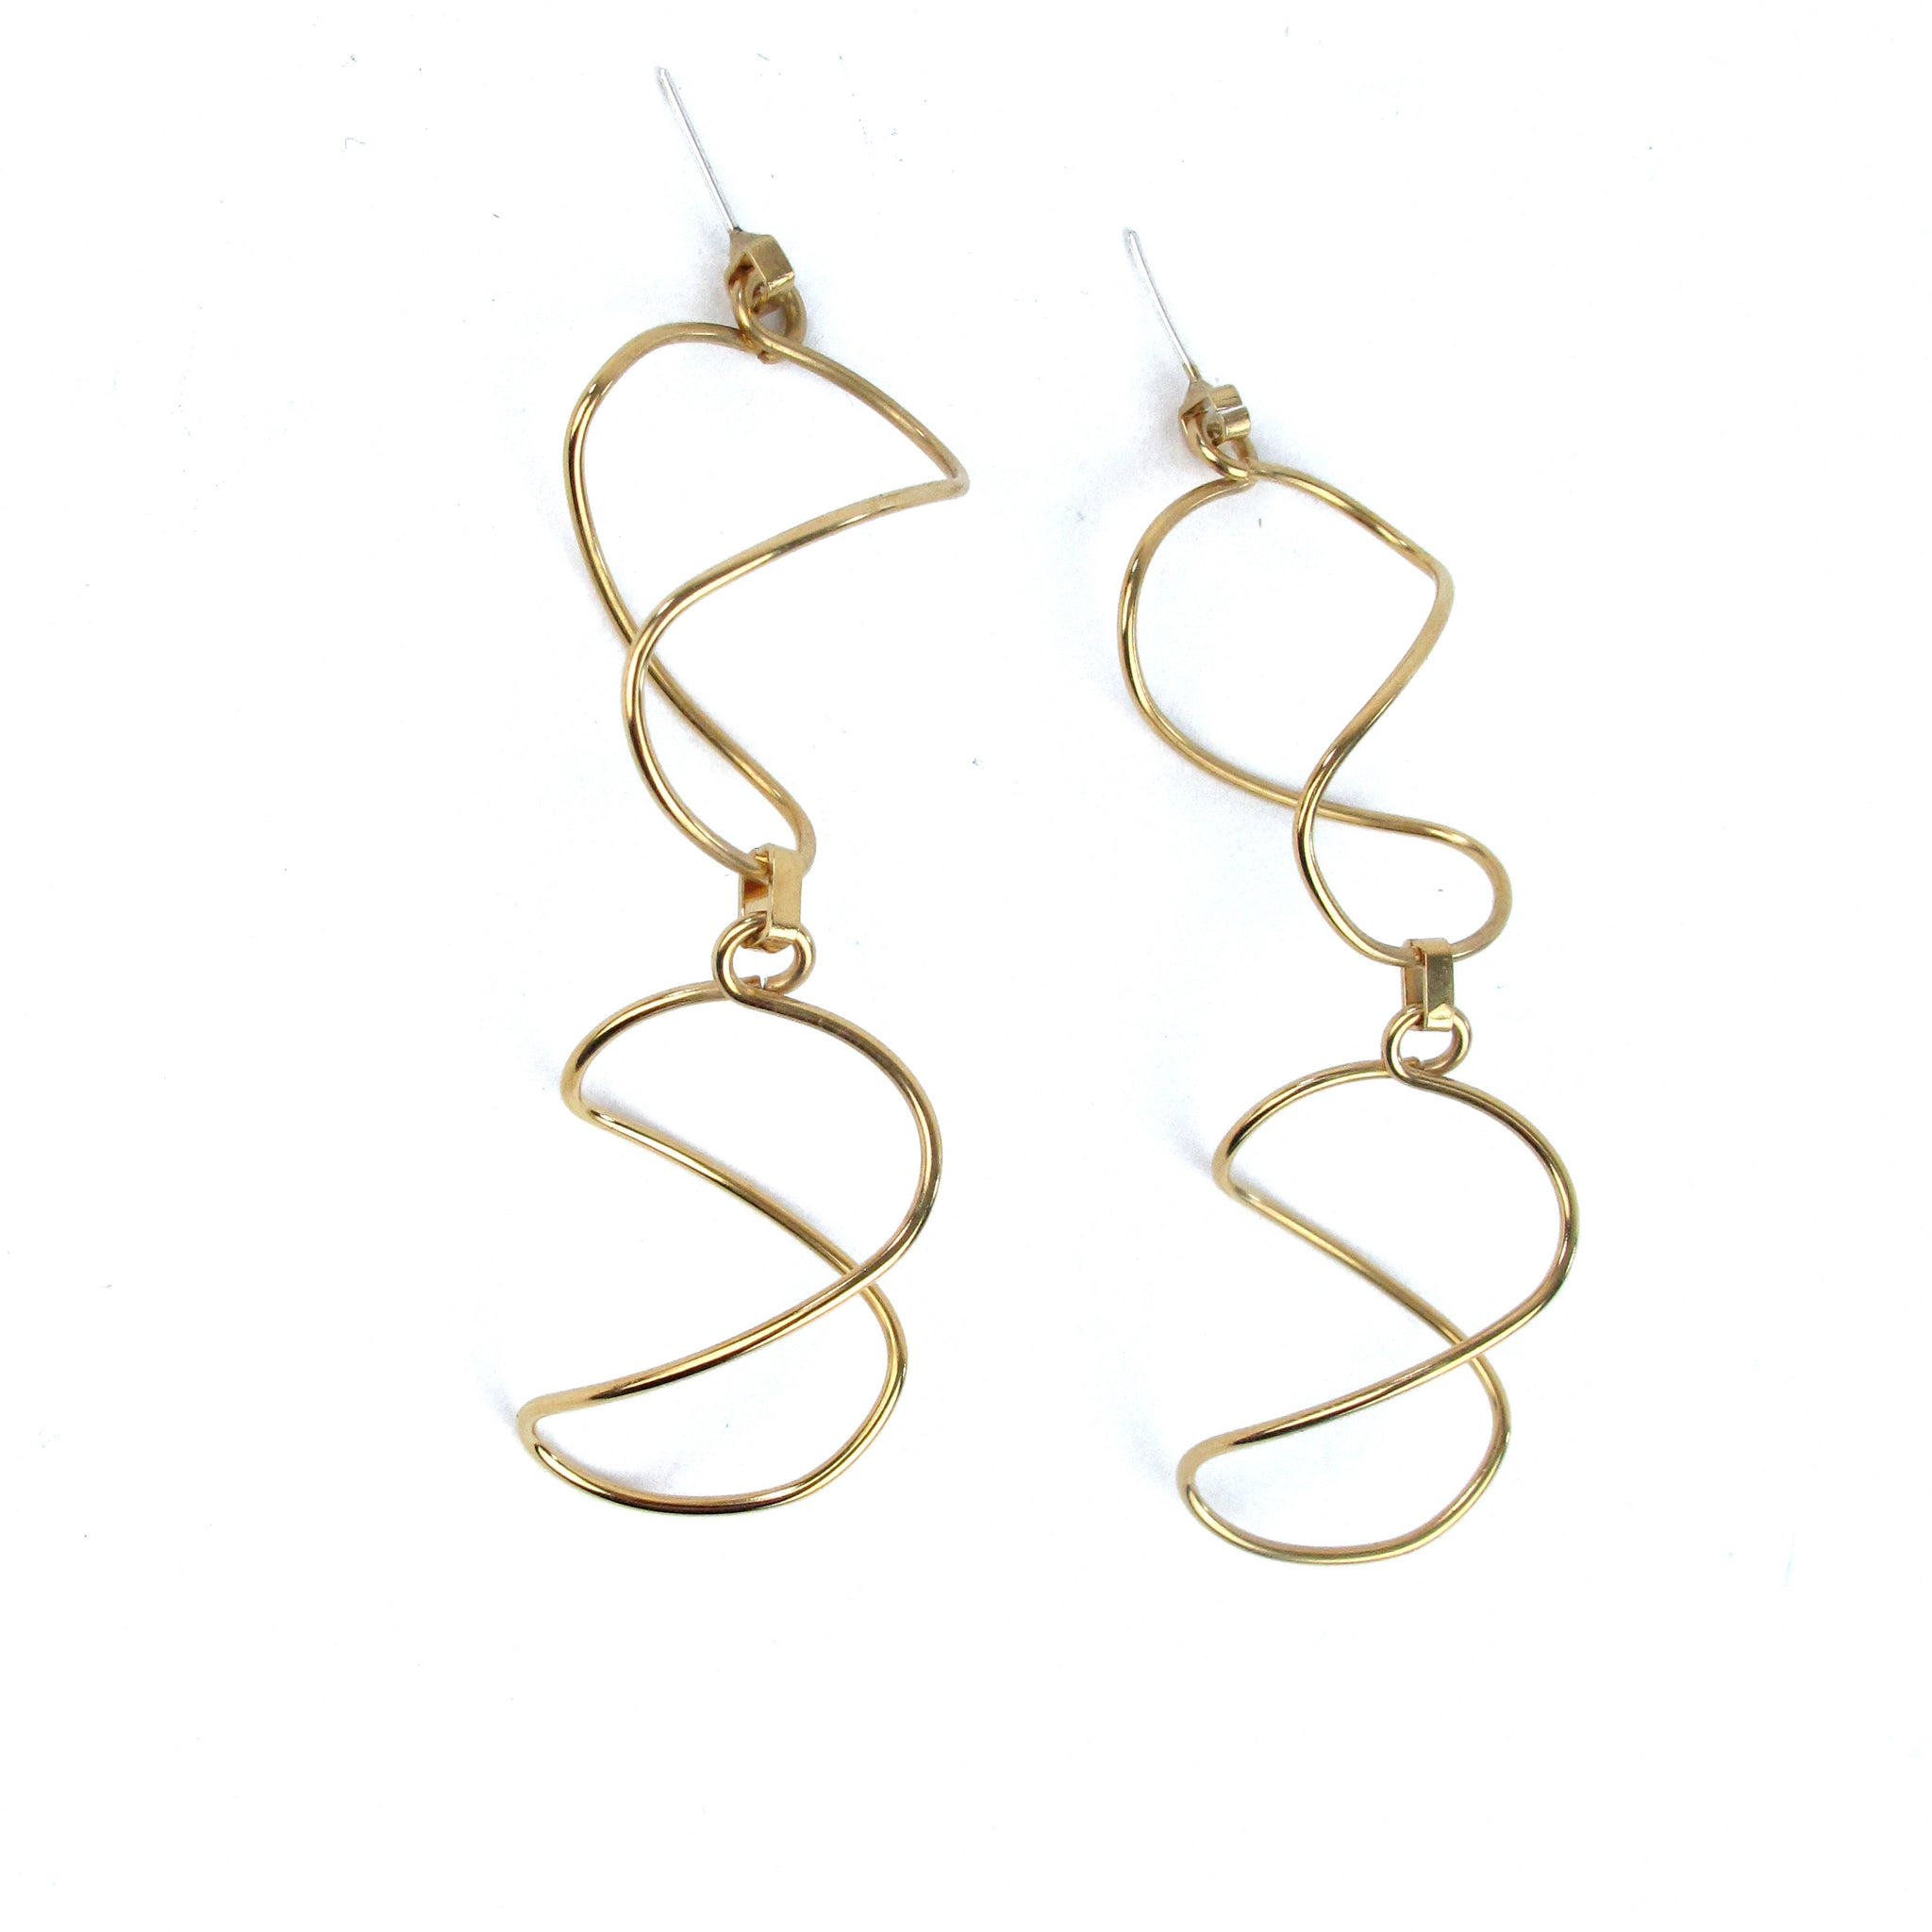 Carpel Earrings